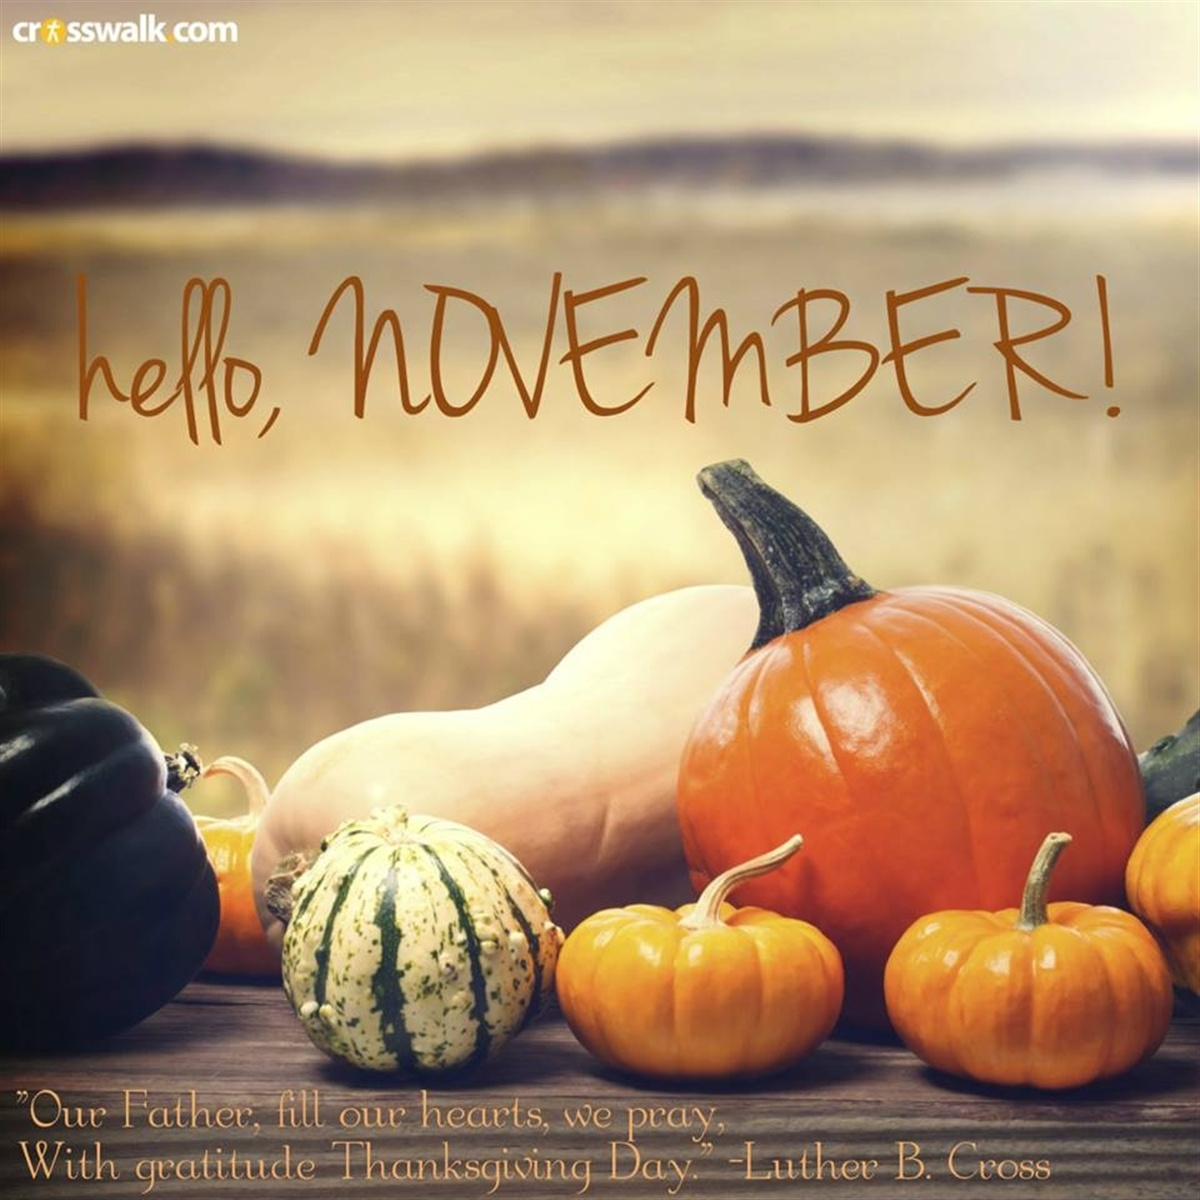 Gourd clipart november  images DownloadClipart graphics org